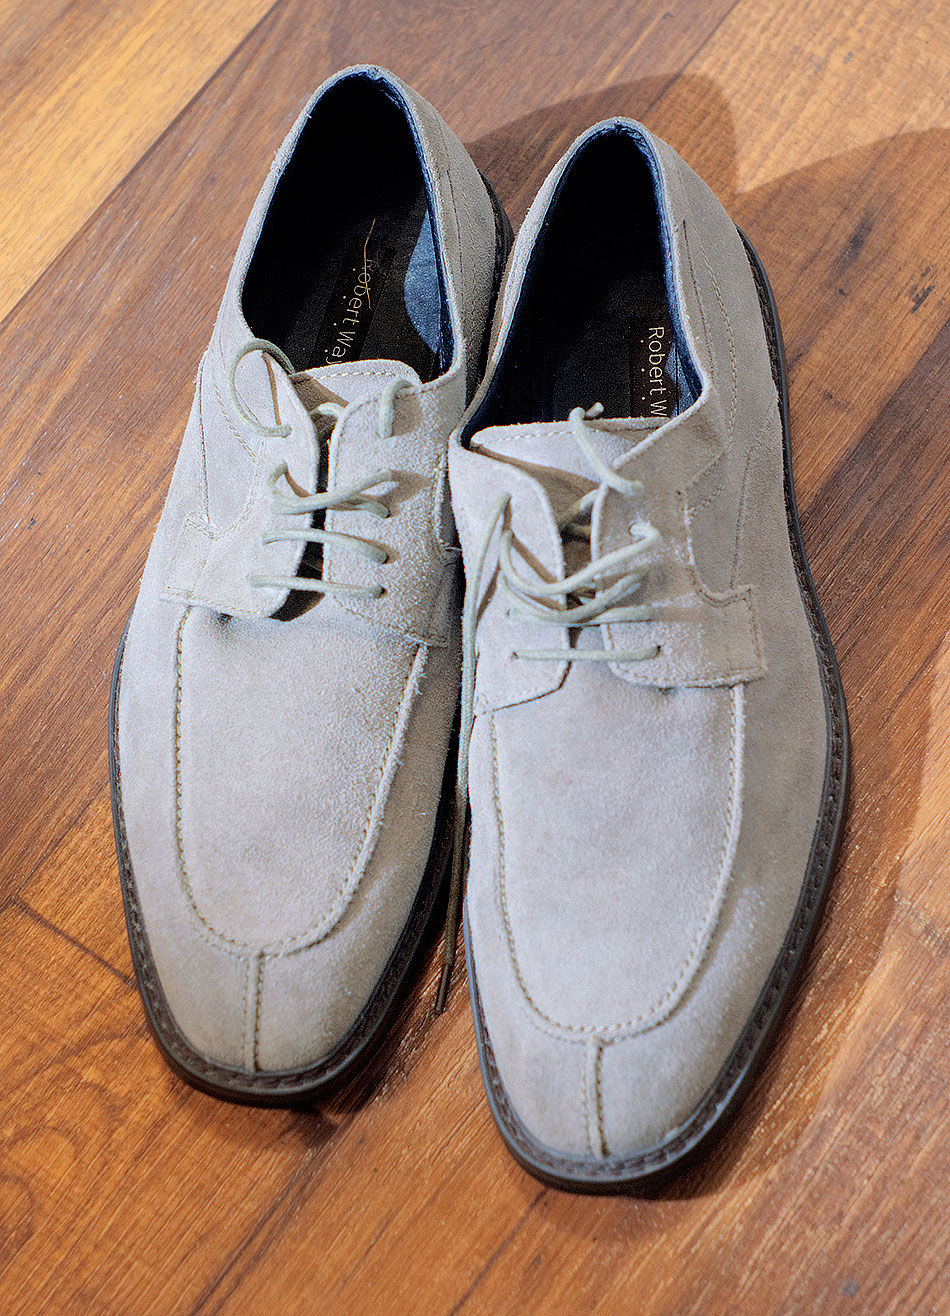 suede Thrift Shop Shoes